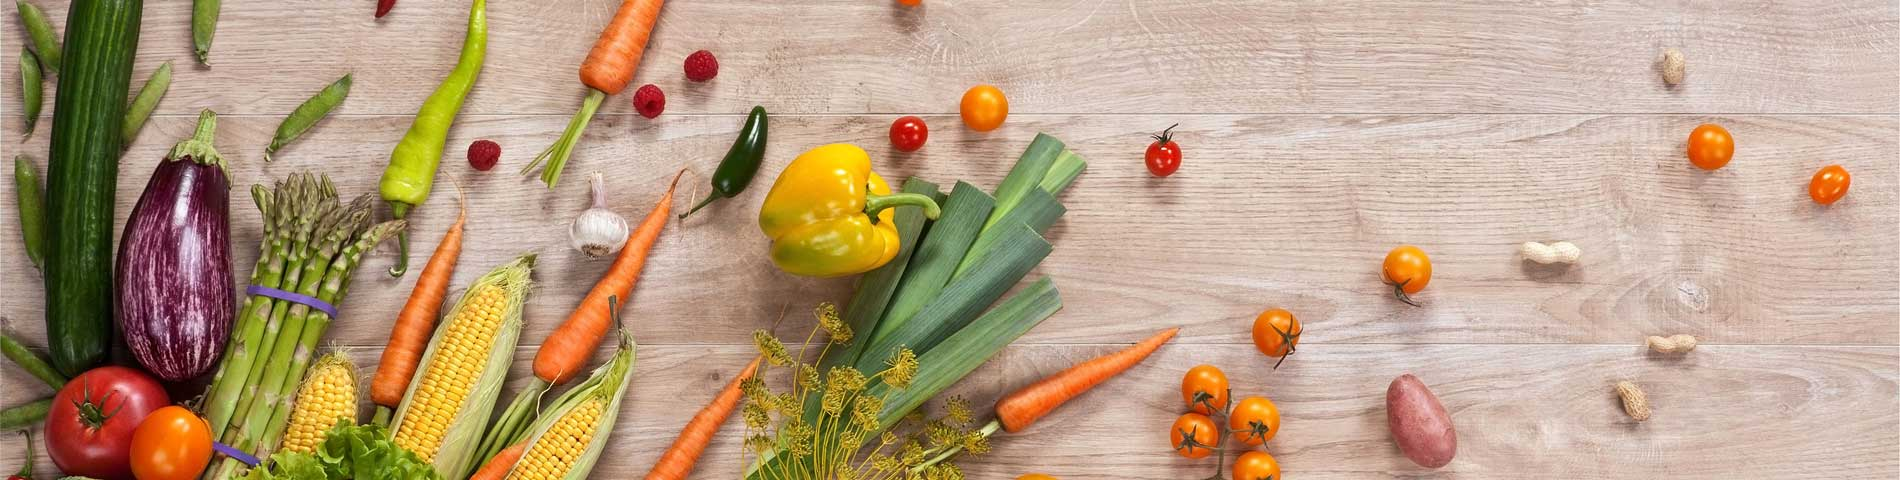 Healthy Nutritious Food in Organic Home